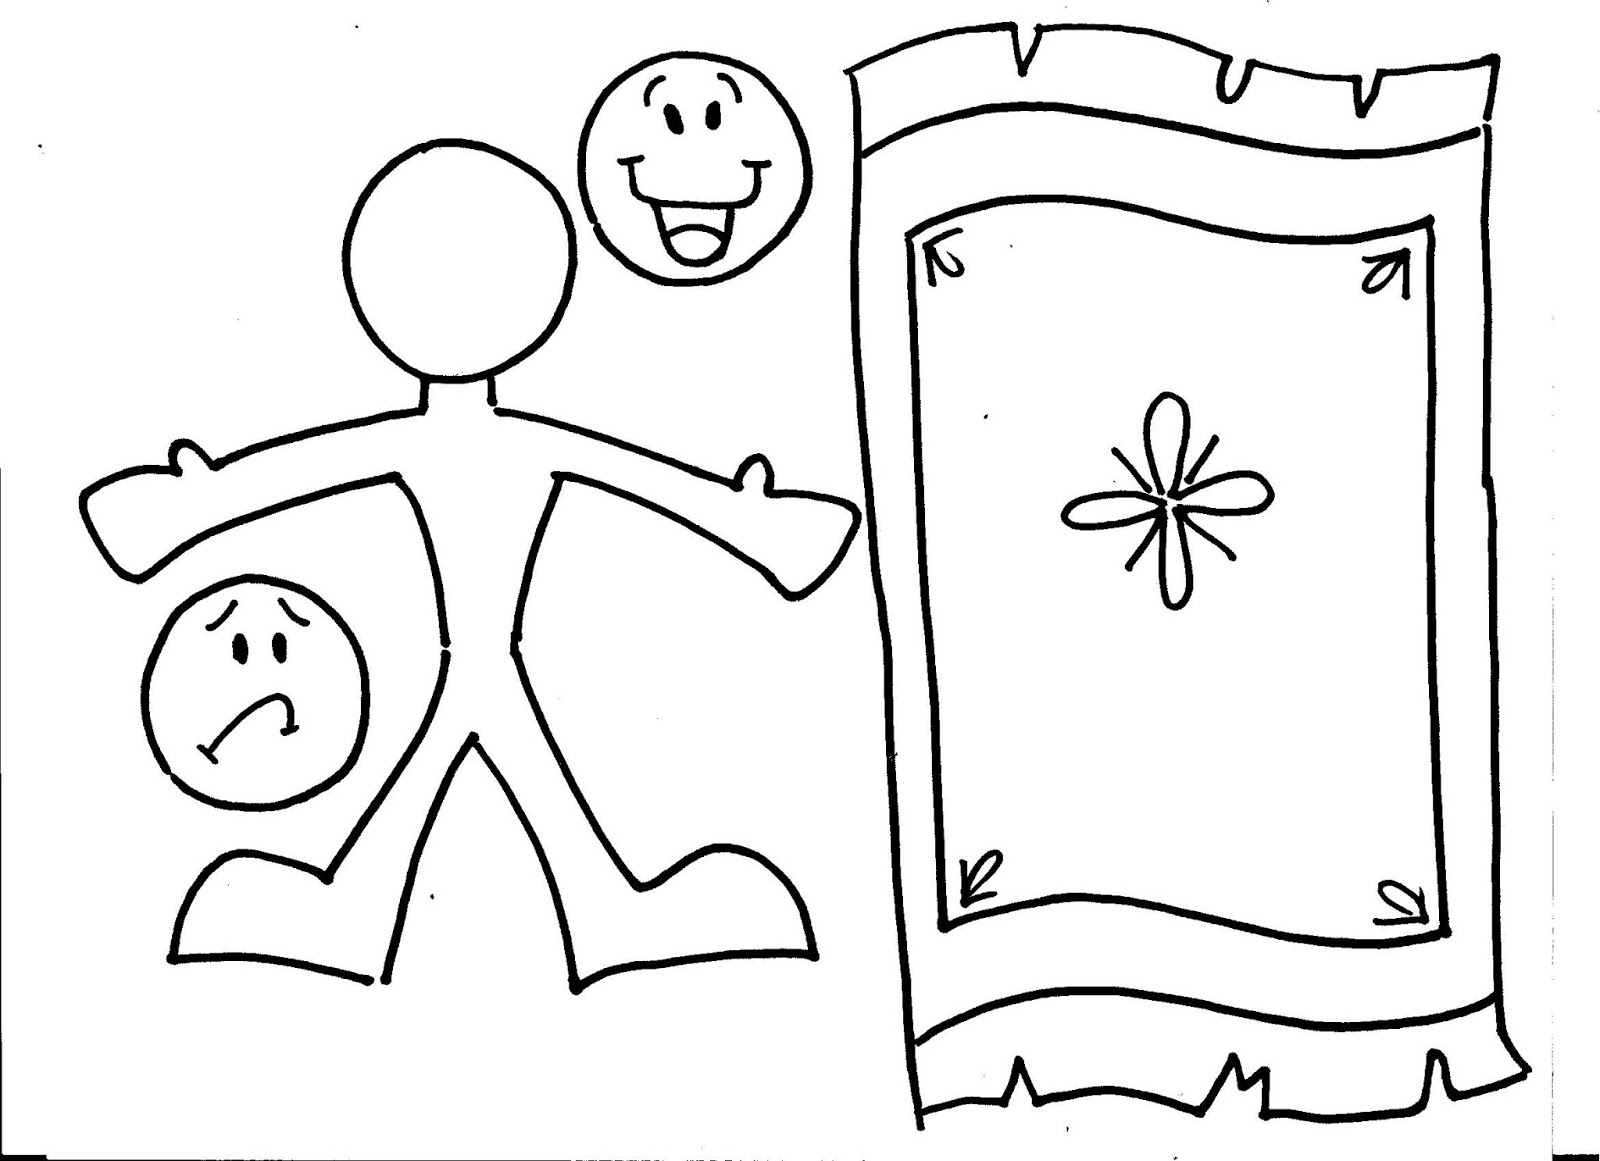 Heals Paralyzed Inside Coloring Page: The Mixed Up Mama: The Paralyzed Man